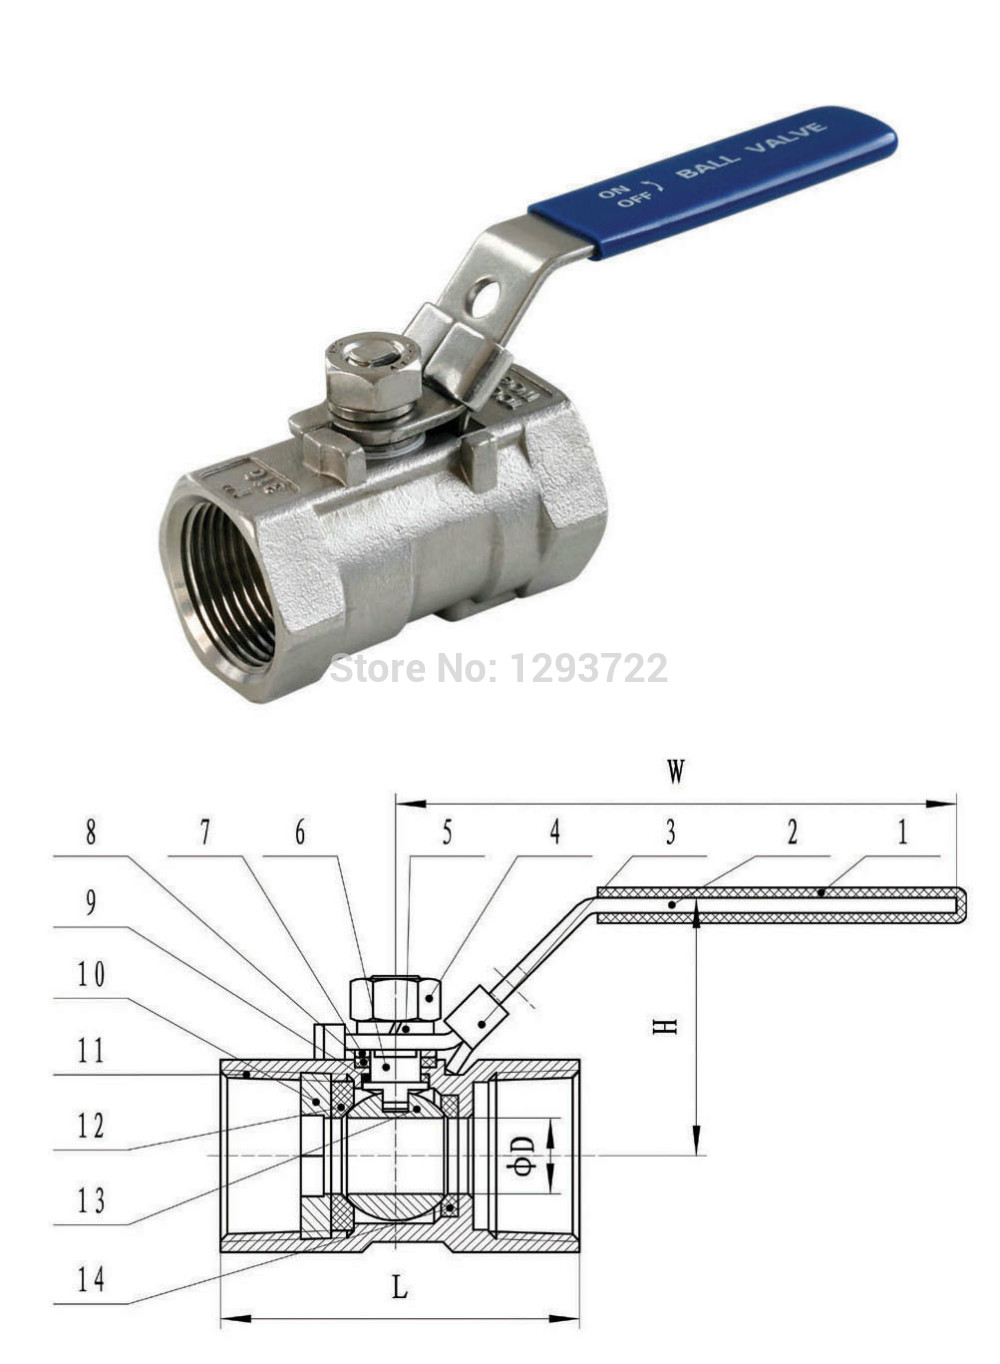 hight resolution of 1 1 4 dn32 stainless steel 1 piece ball valve ss304 economical water valve stainless steel ball valve ball valve dn20 in valve from home improvement on